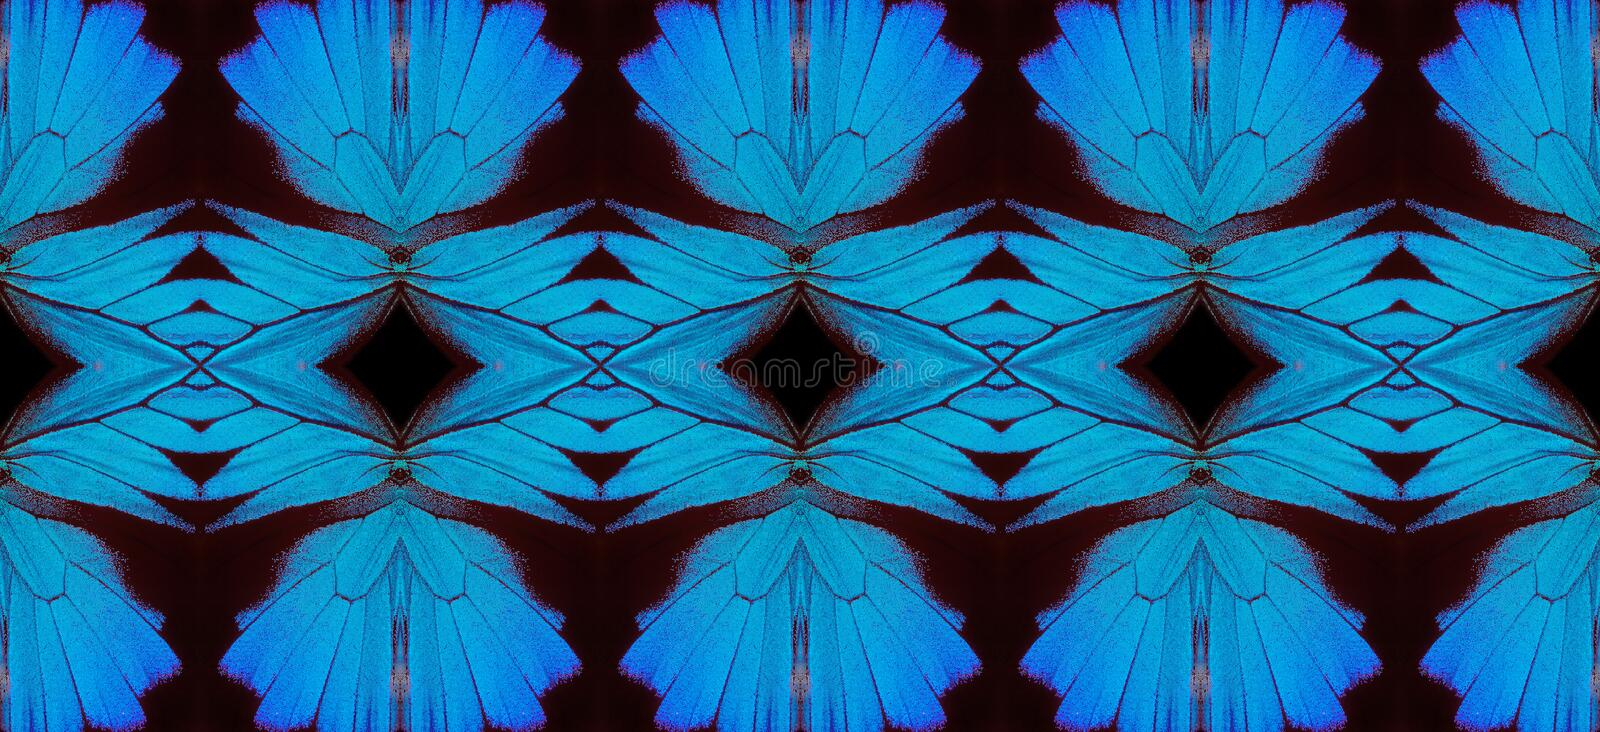 Blue abstract pattern. Wings of the butterfly Ulysses. Ornament from the wings of butterflies. royalty free stock photo